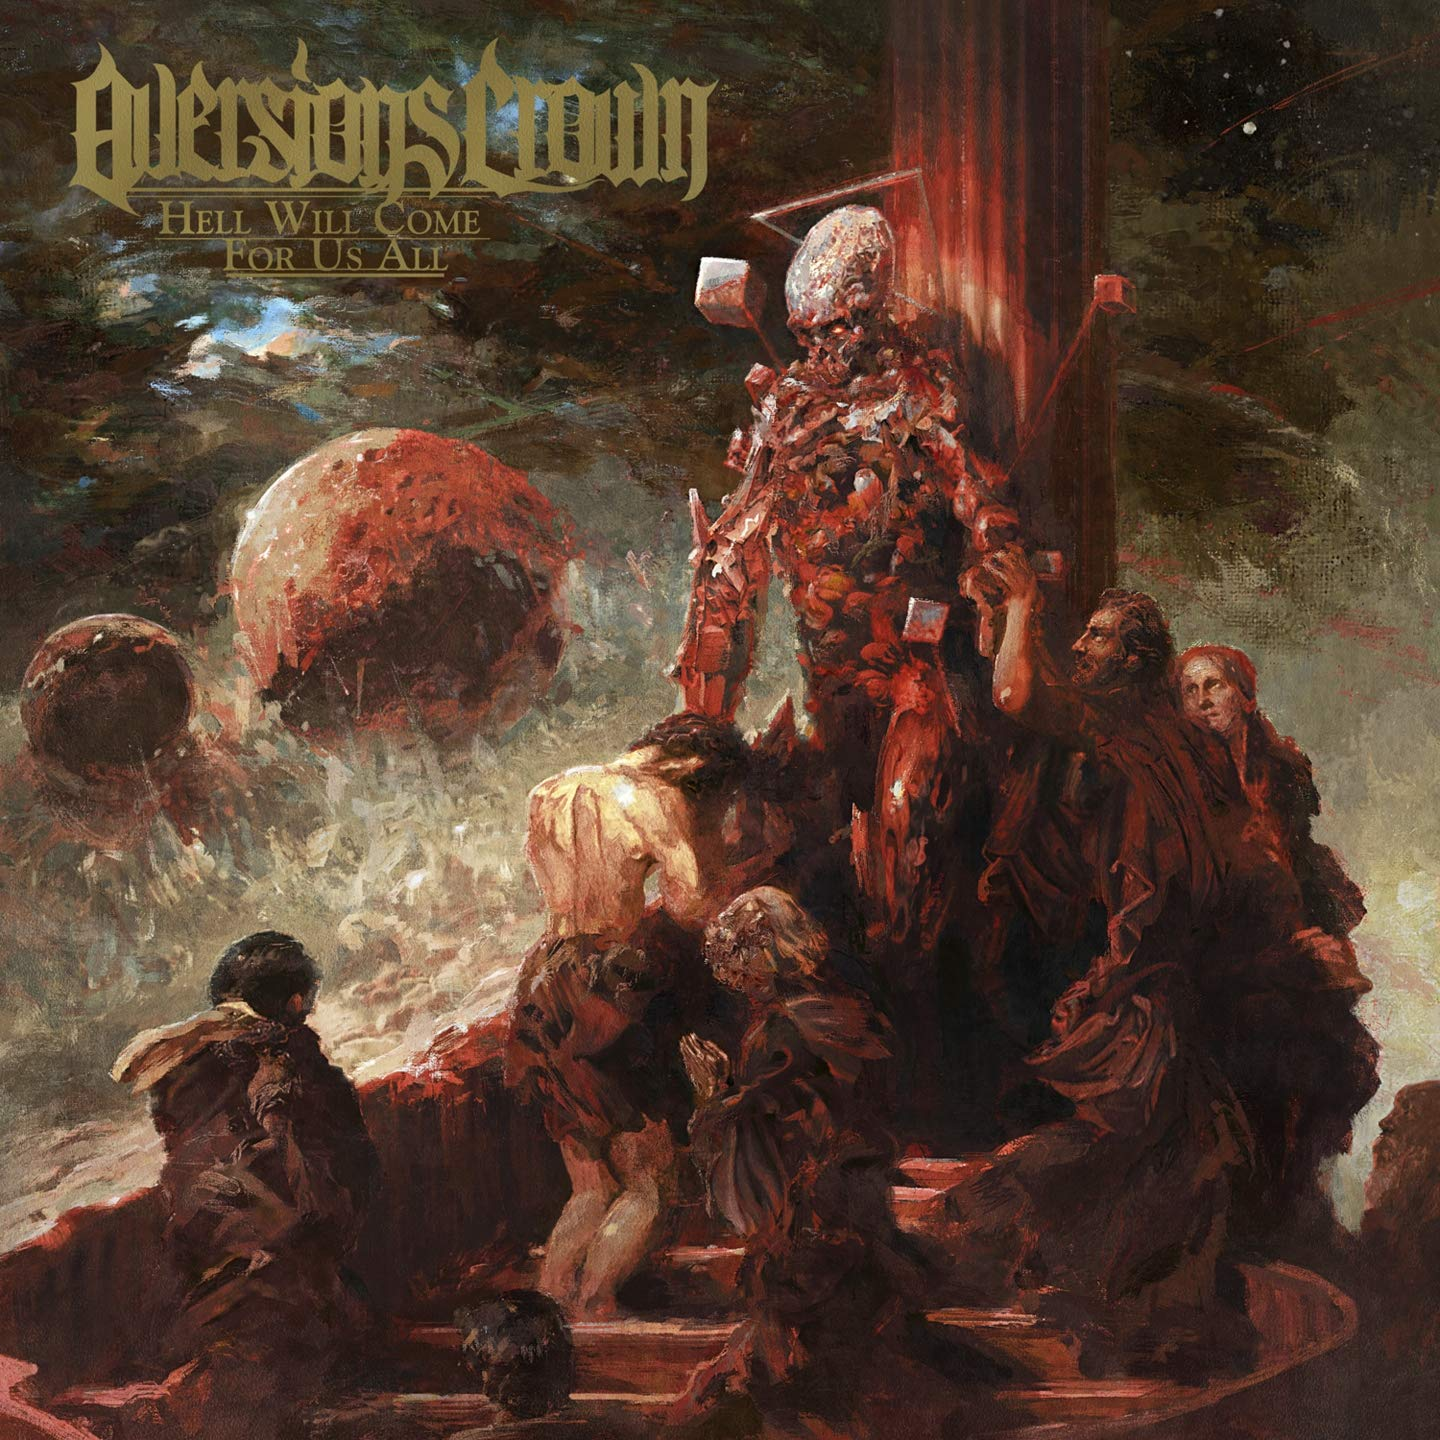 Aversions Crown-Hell Will Come for Us All-CD-FLAC-2020-GRAVEWISH